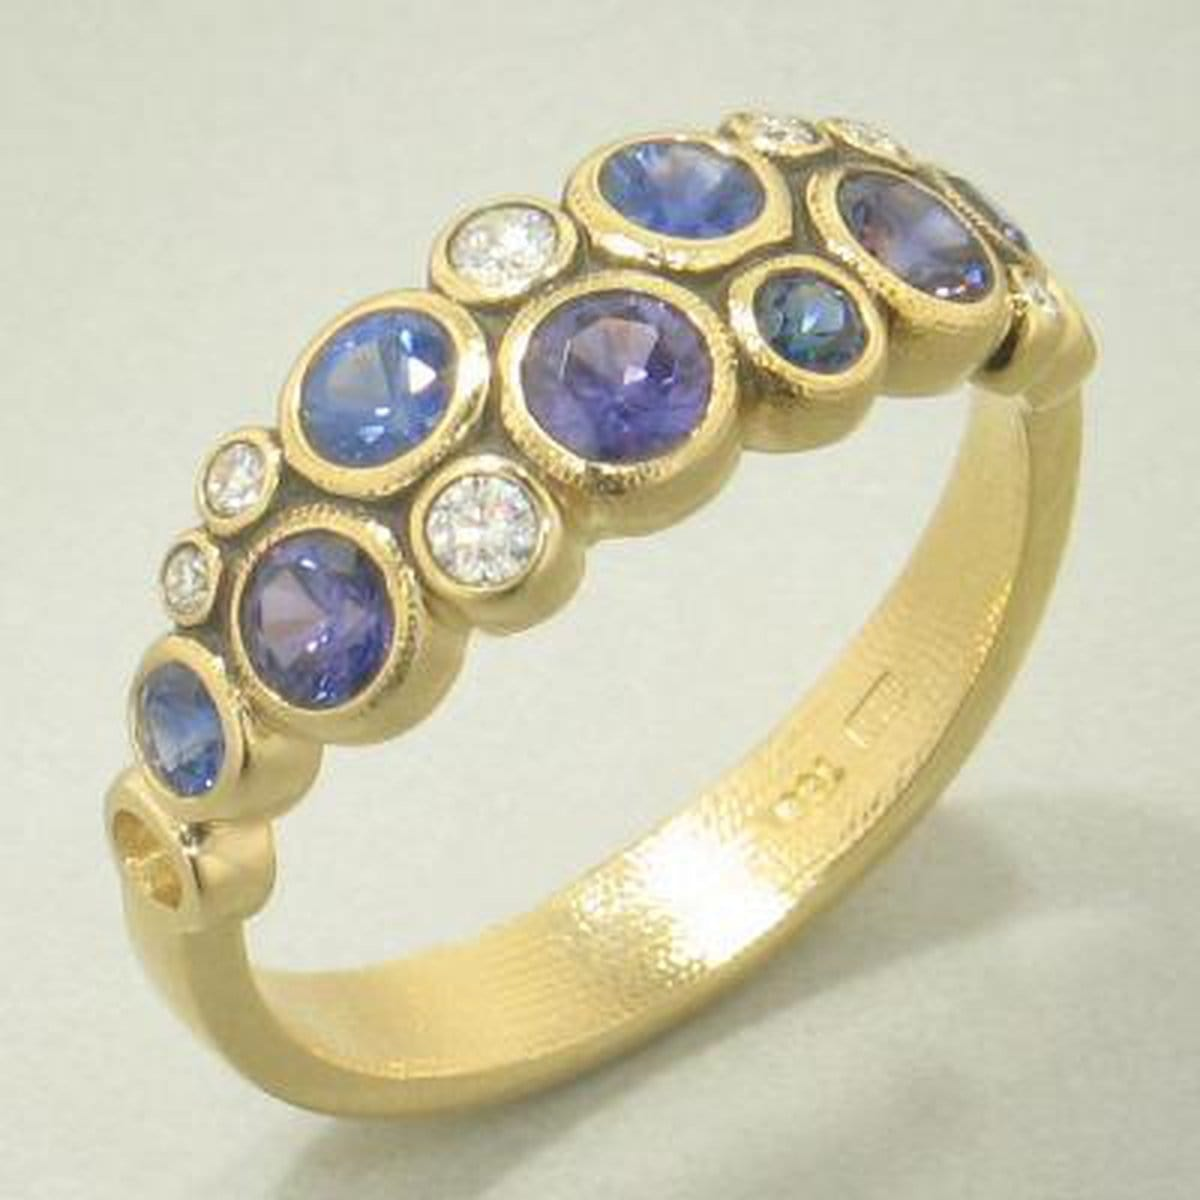 18K Vivid Violet Mix Sapphire & Diamond Ring - R-113S-Alex Sepkus-Renee Taylor Gallery